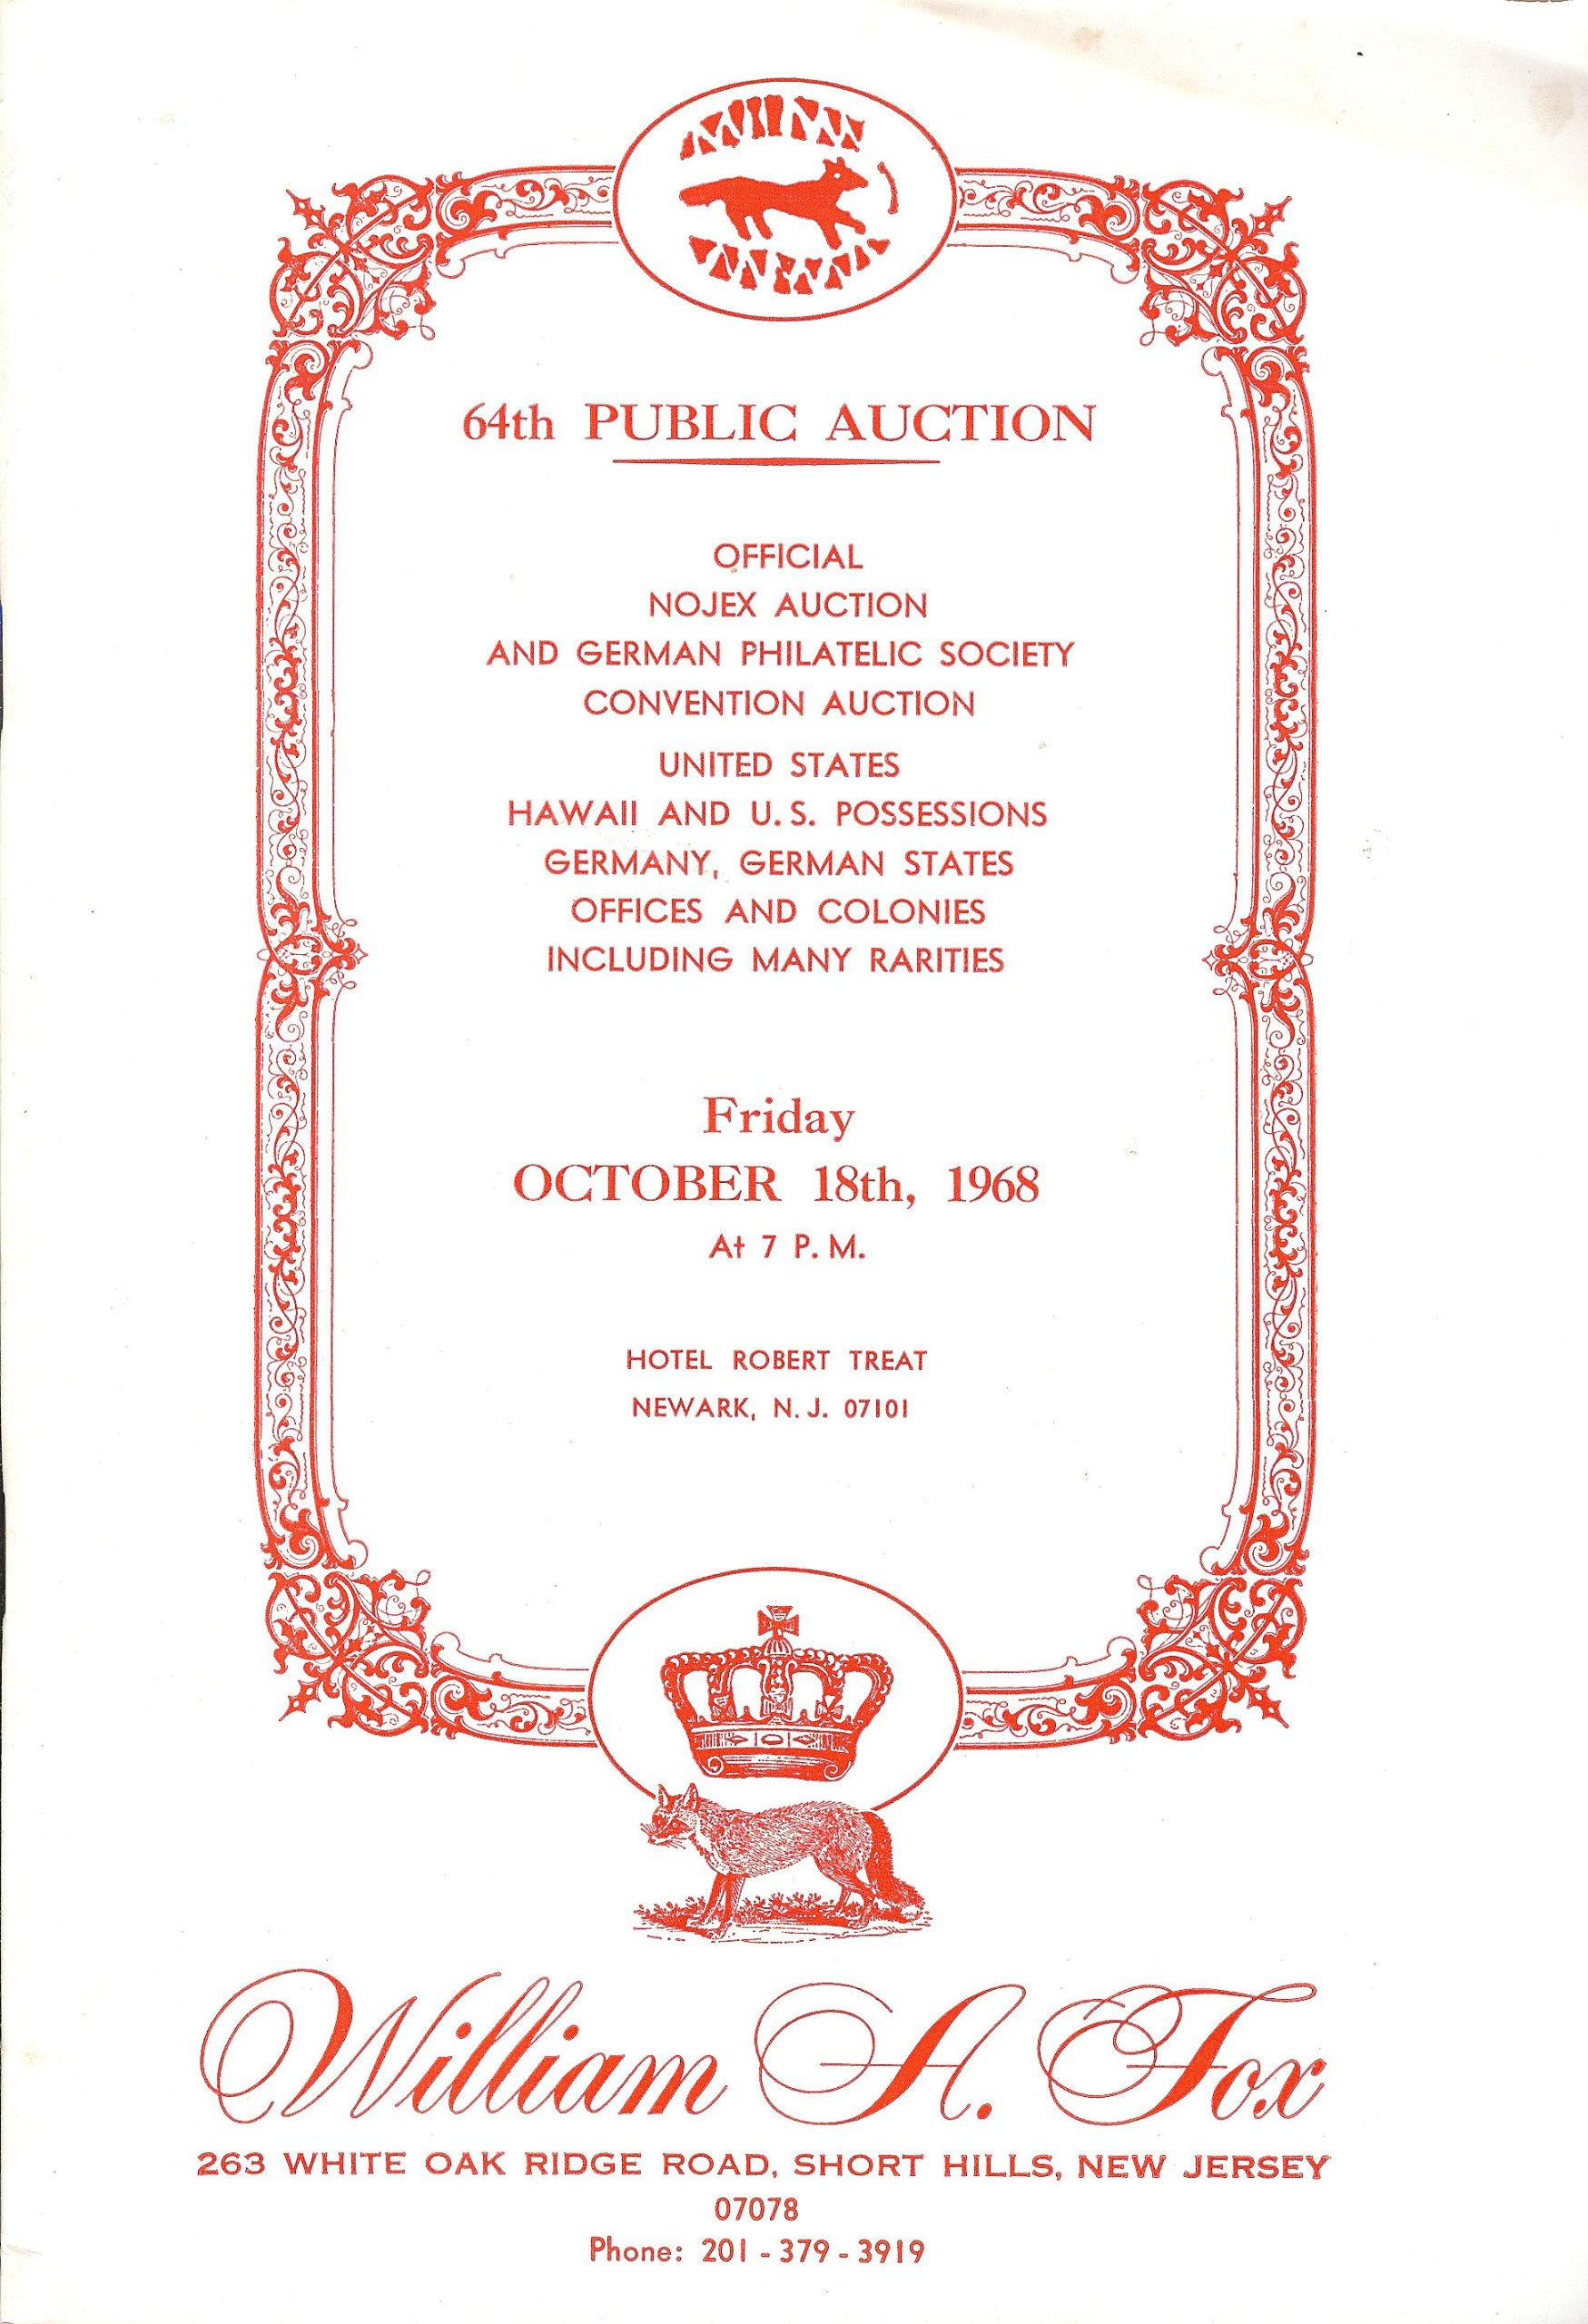 Official Nojex Auction and German Philatelic Society (Stamp